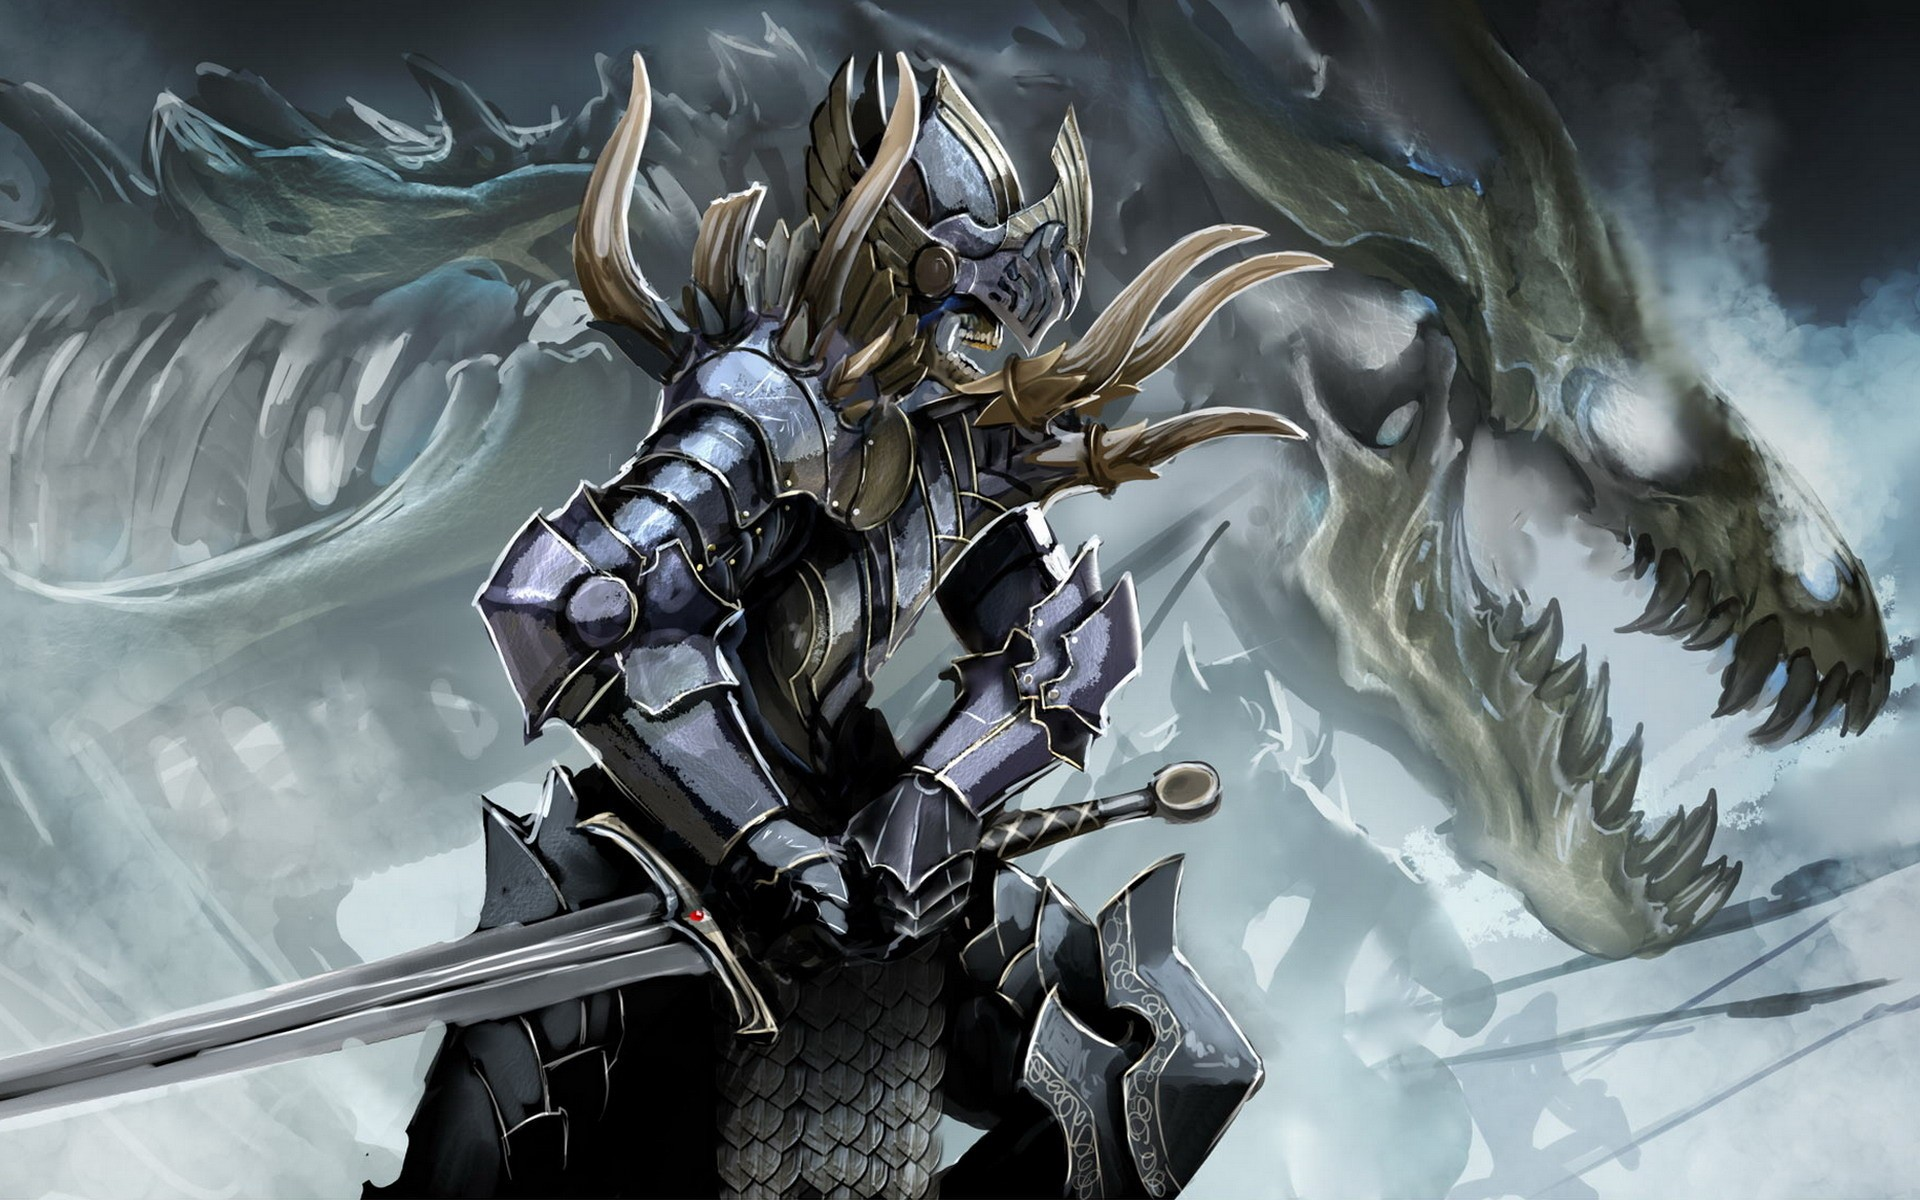 Armored Dragon Wallpaper Soldiers Skulls Dragons